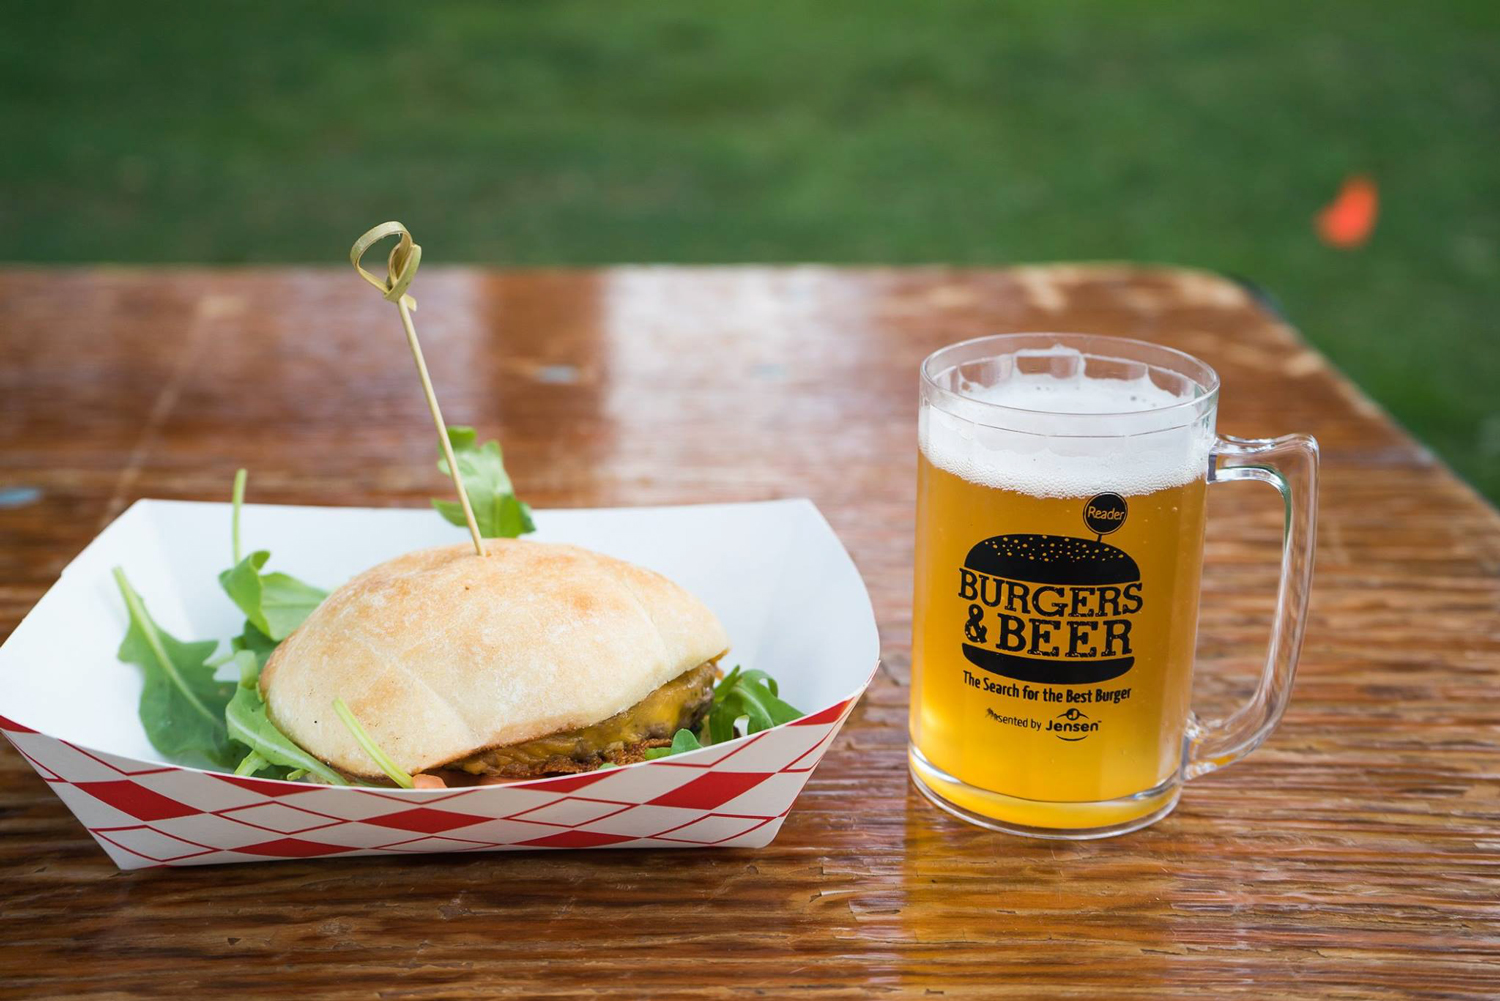 Burgers-and-Beer-Best-Of-Photos-for-Web-(12-of-25).jpg